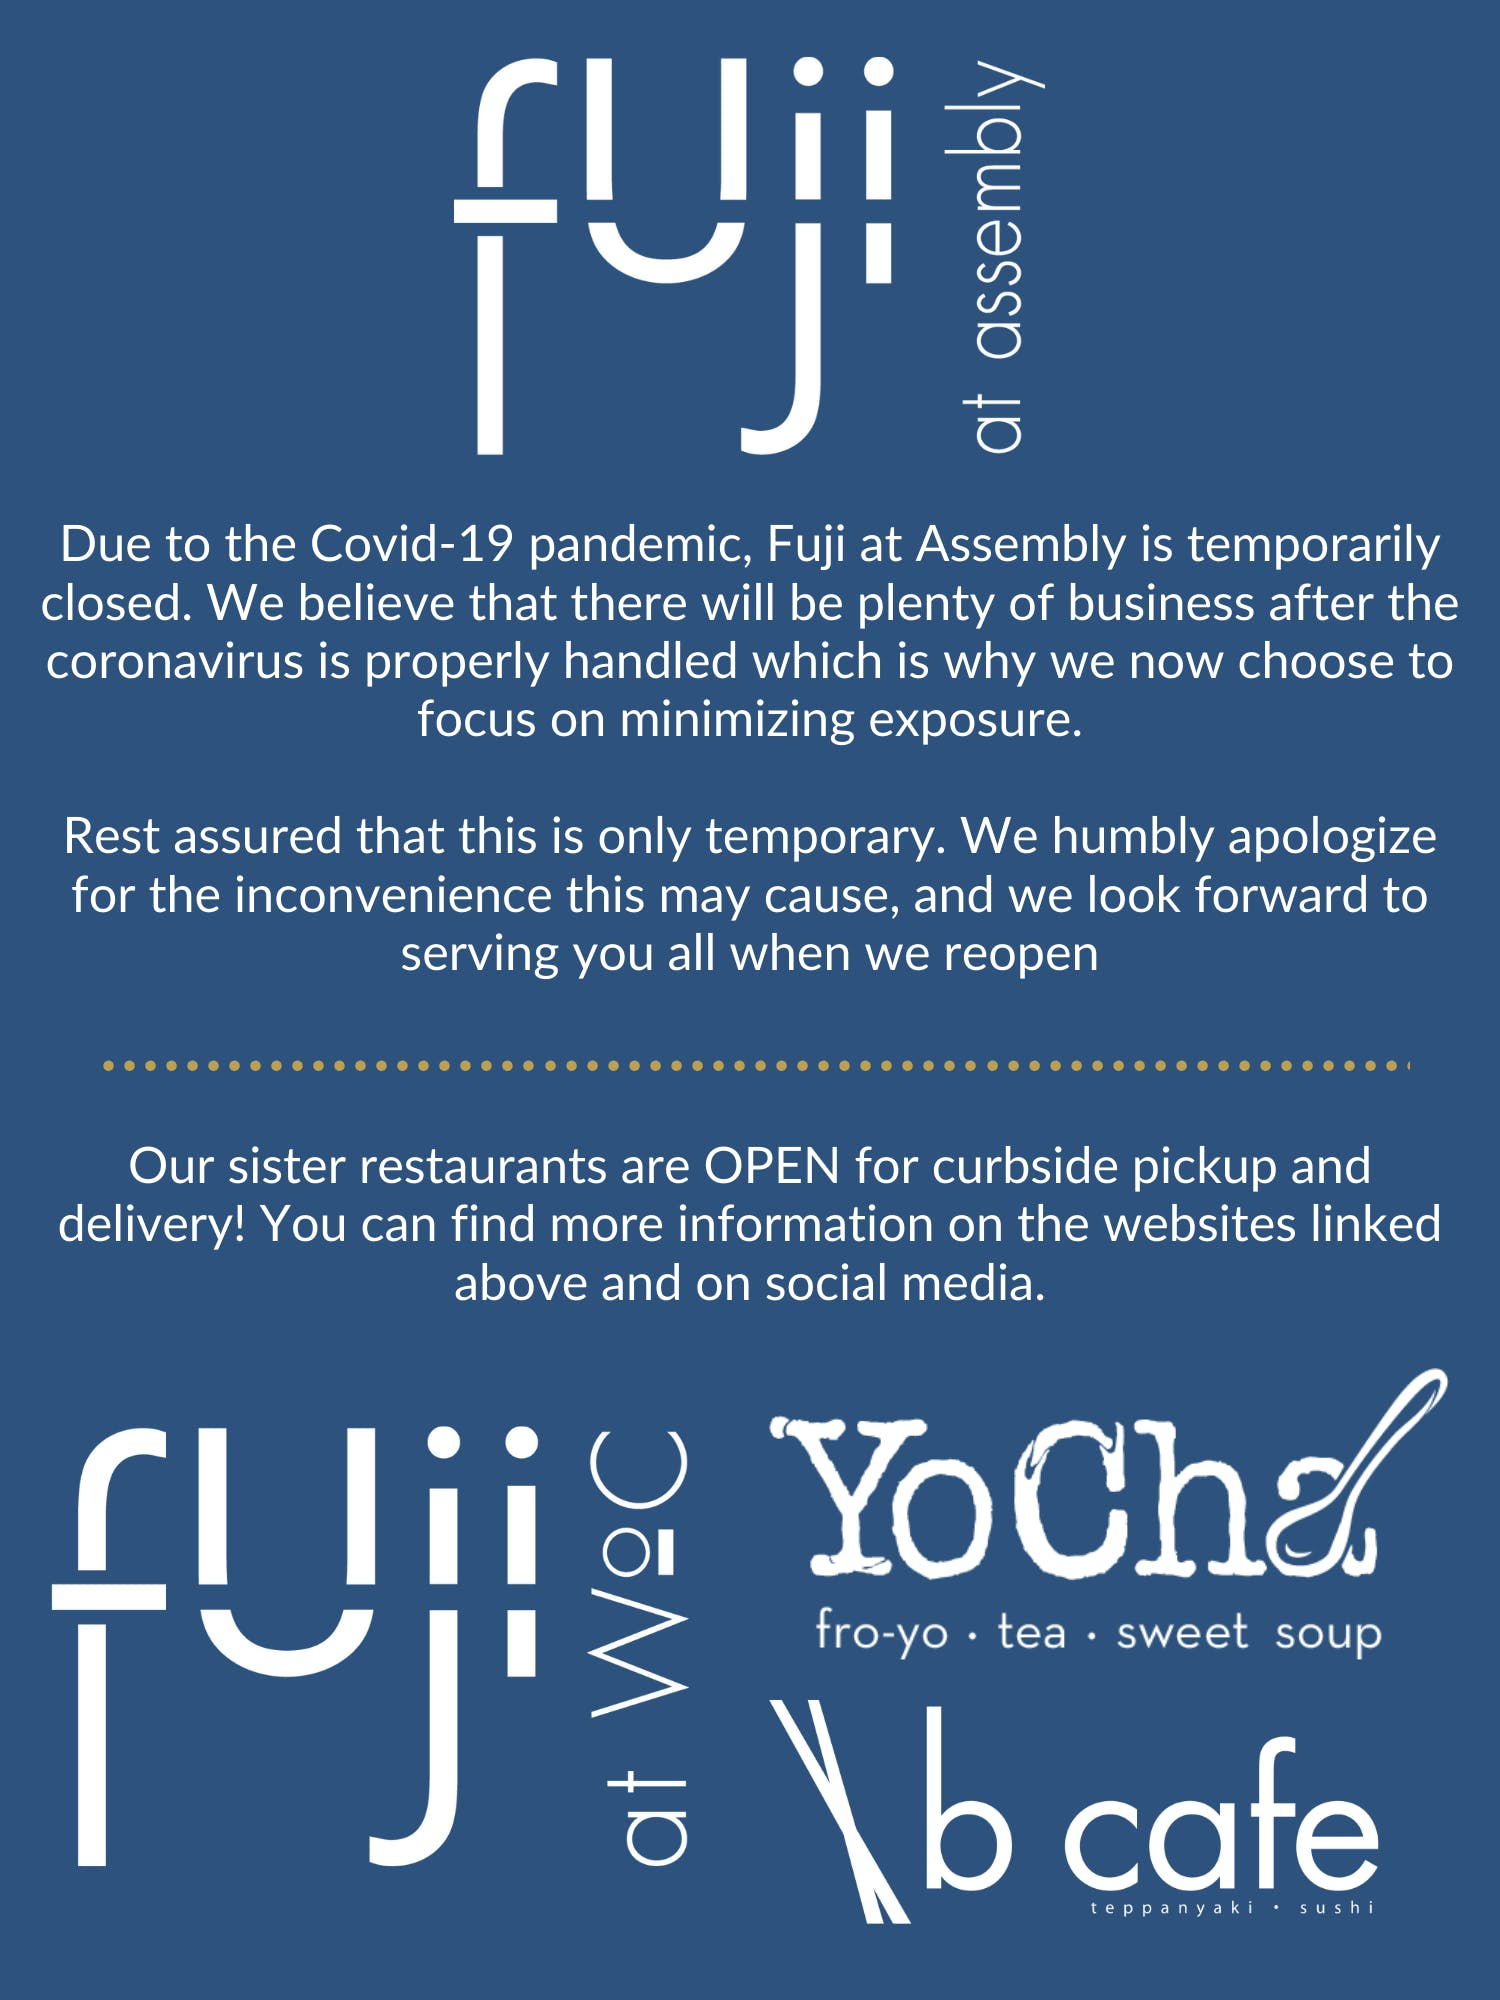 Fuji at Assembly is currently closed due to the Covid-19 pandemic. Please check out our sister restaurants Fuji at WoC, B Cafe, and YoCha!